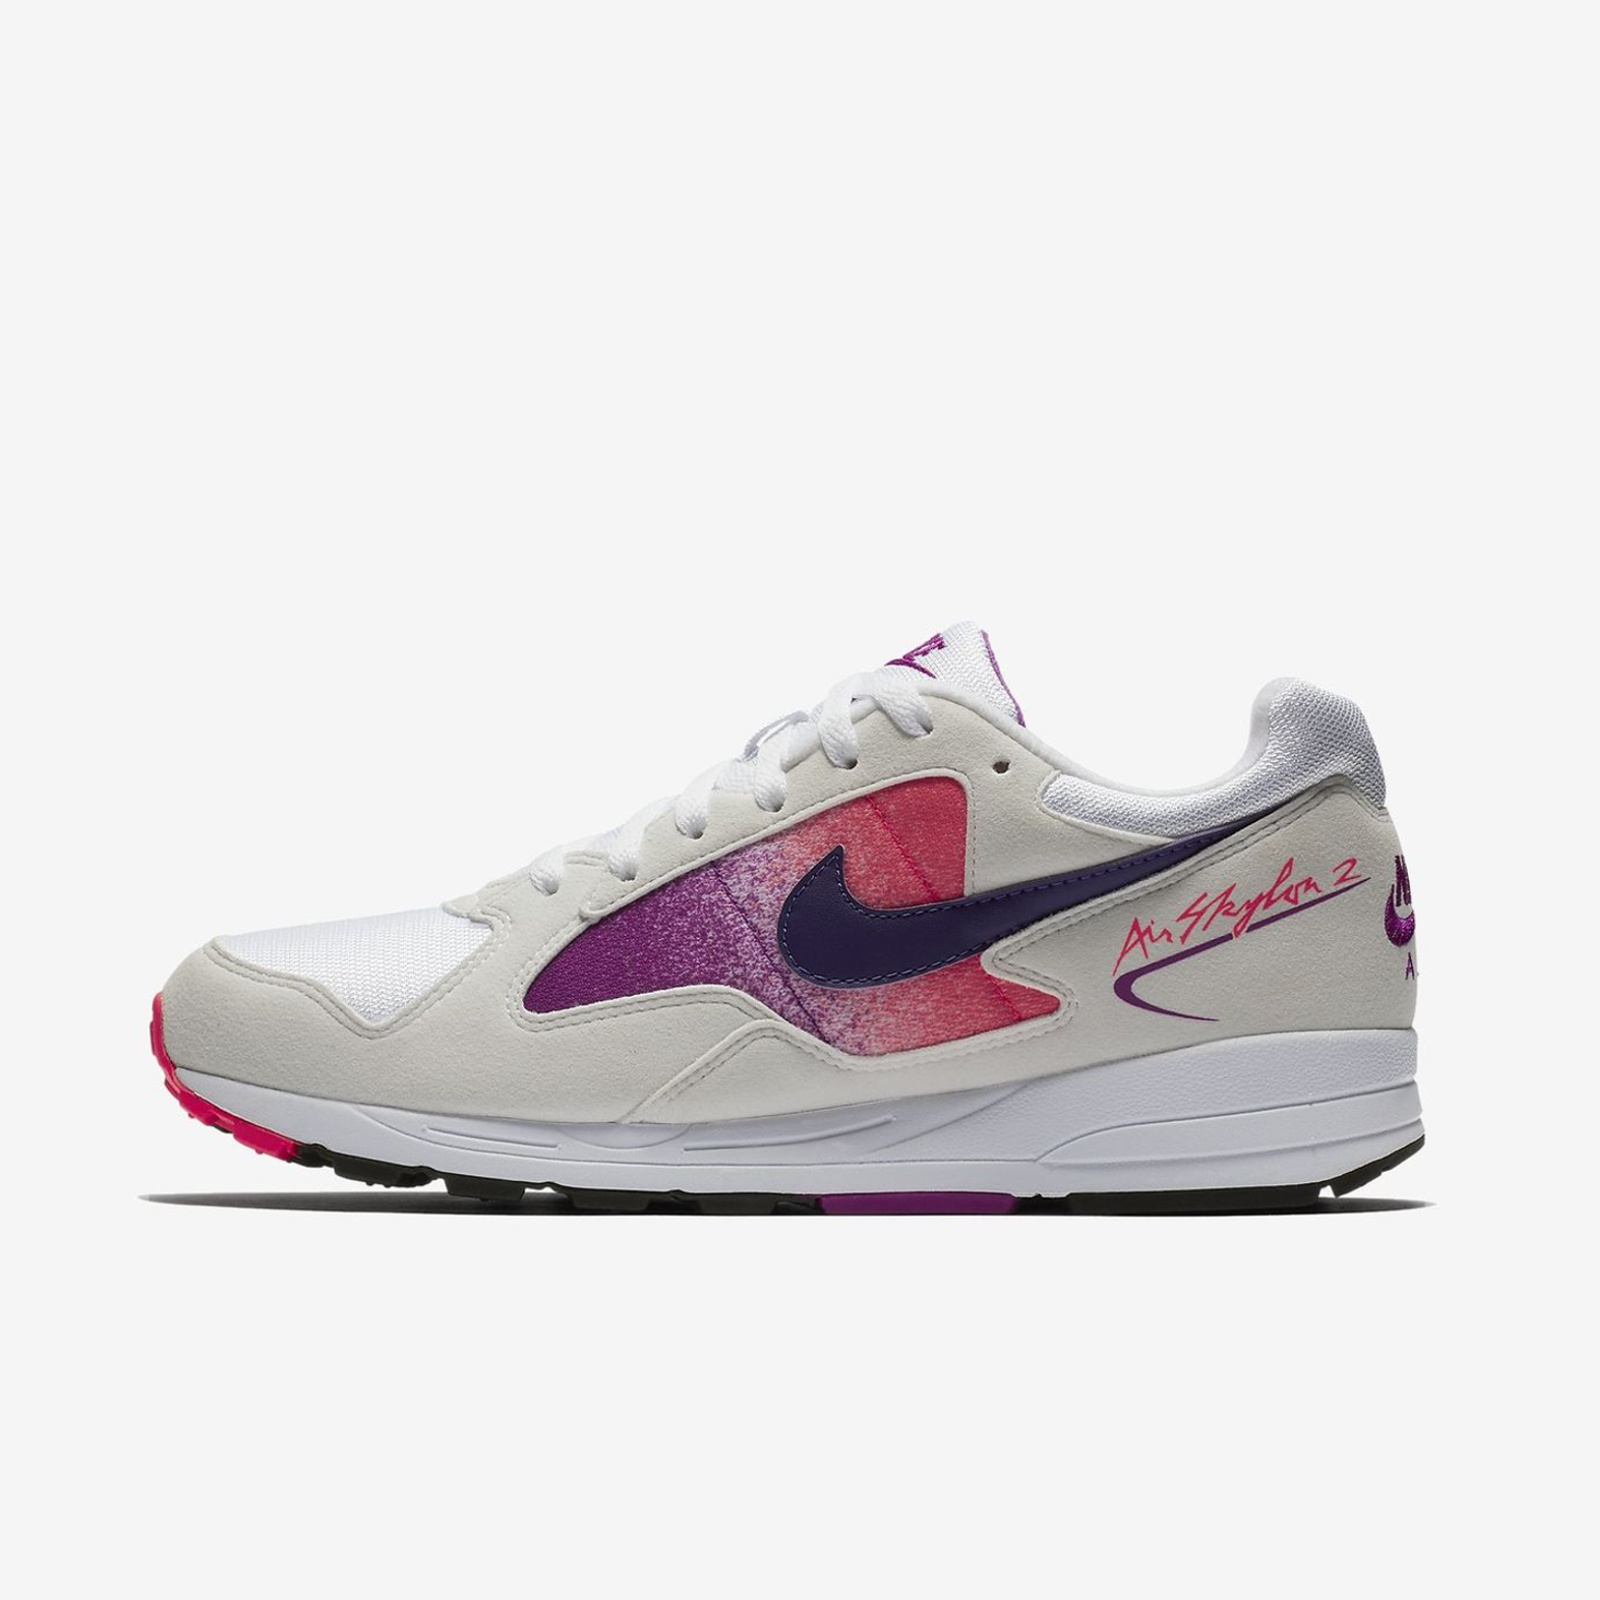 86697aa12b72f NIKE AIR SKYLON II AO1551-103 WHITE COURT PURPLE SOLAR RED 2